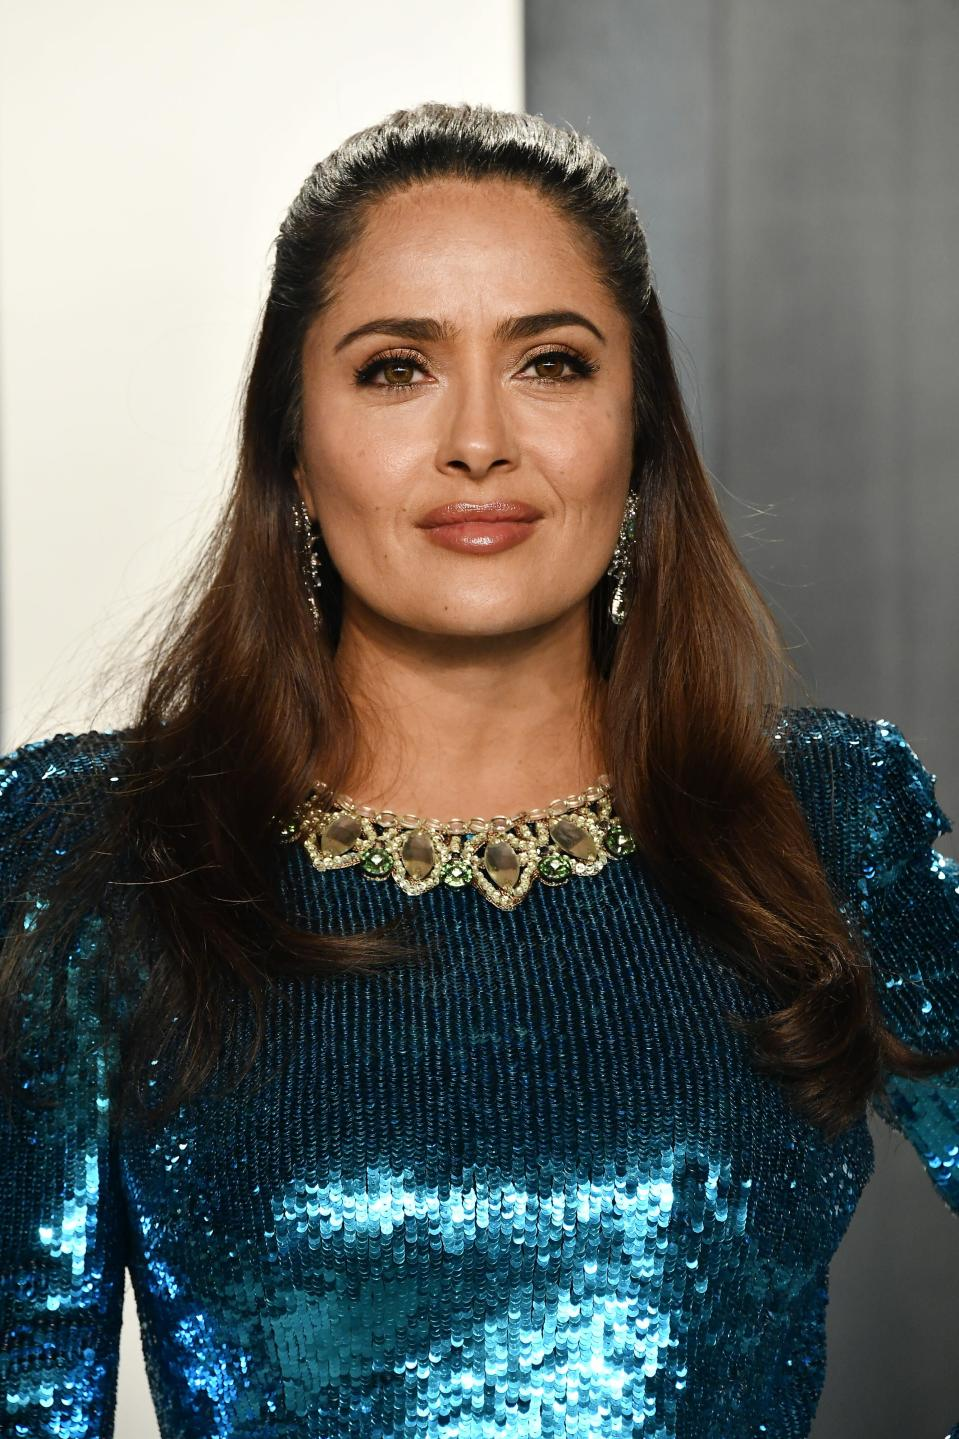 Salma Hayek Can't Stop Taking Makeup-Free Selfies, and Fans are Loving It